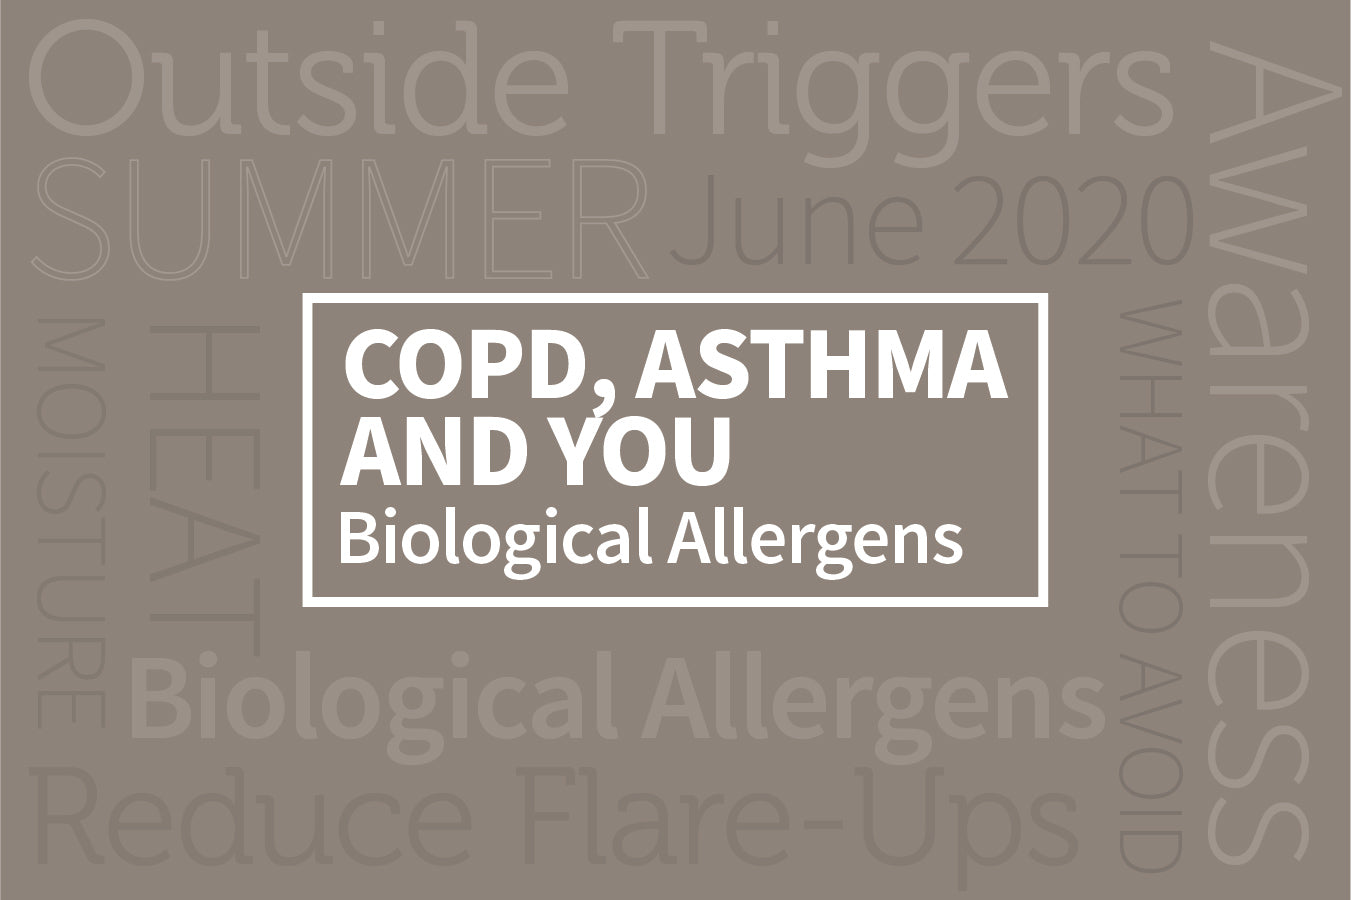 COPD, Asthma, and You: Biological Allergens